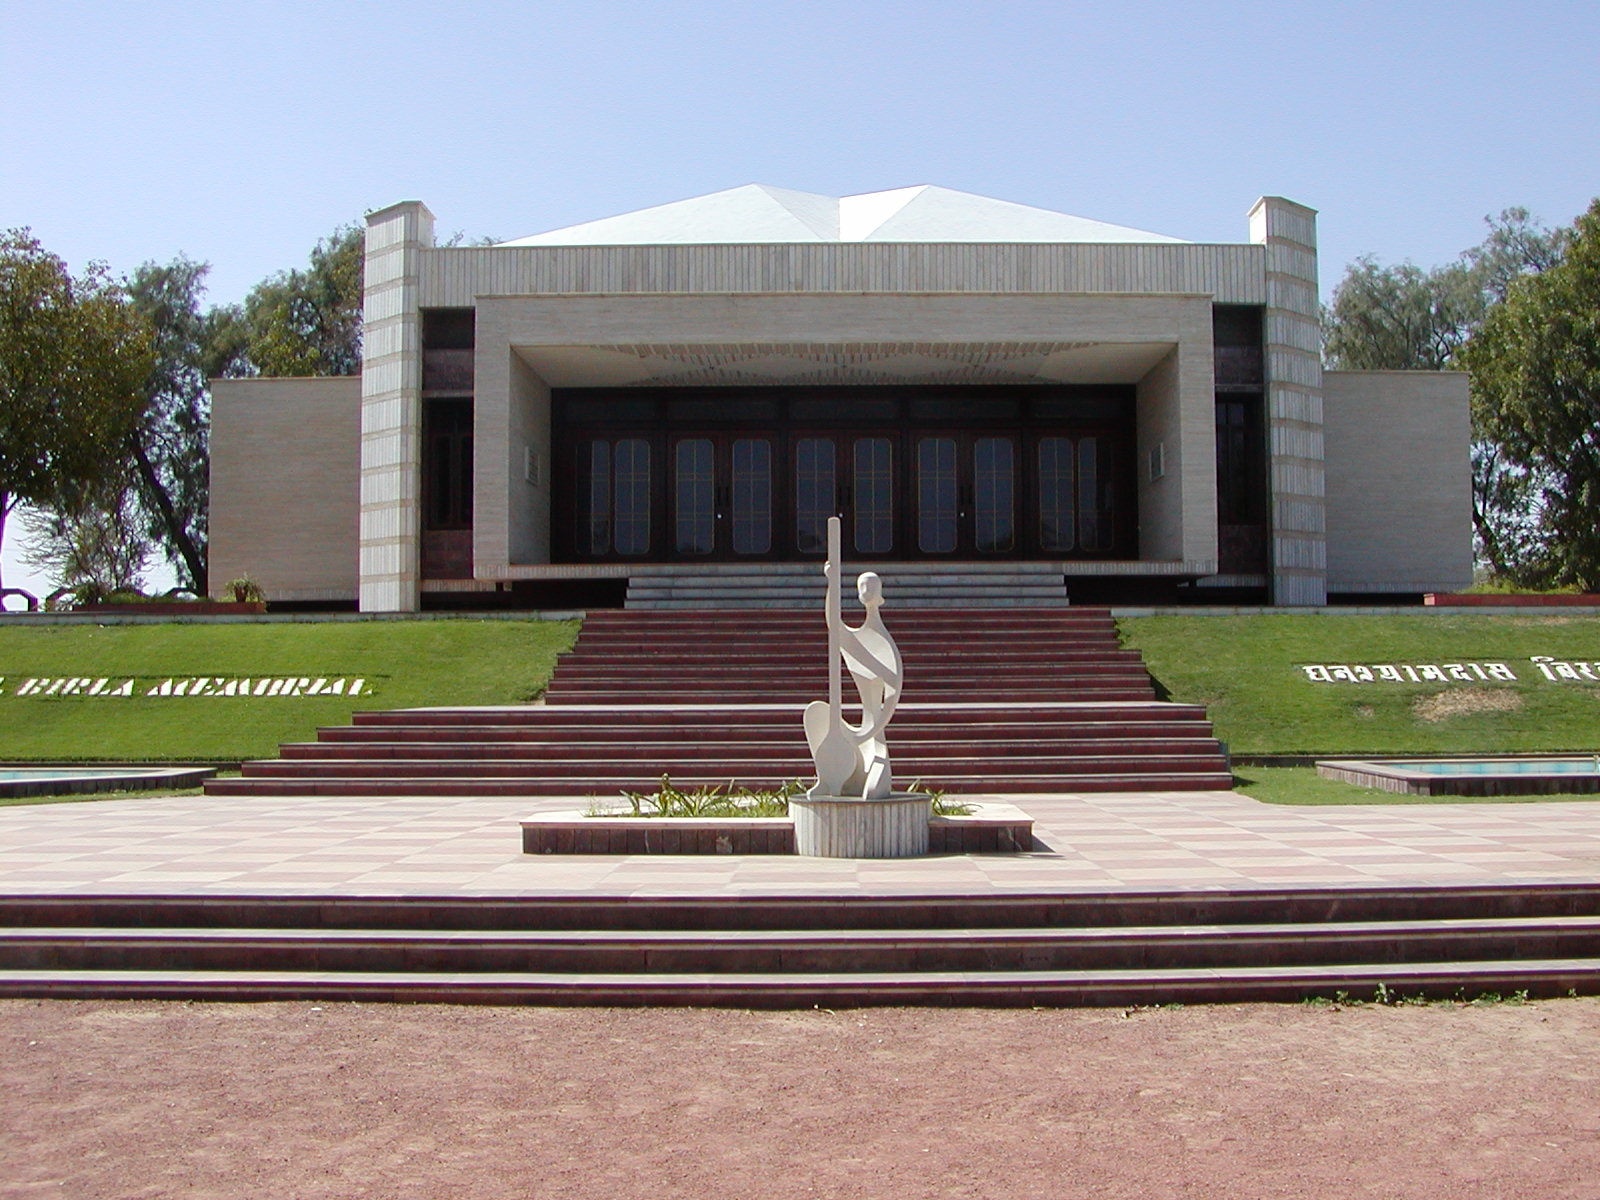 Birla Science and Technlogy Museum in Pilani, Rajasthan